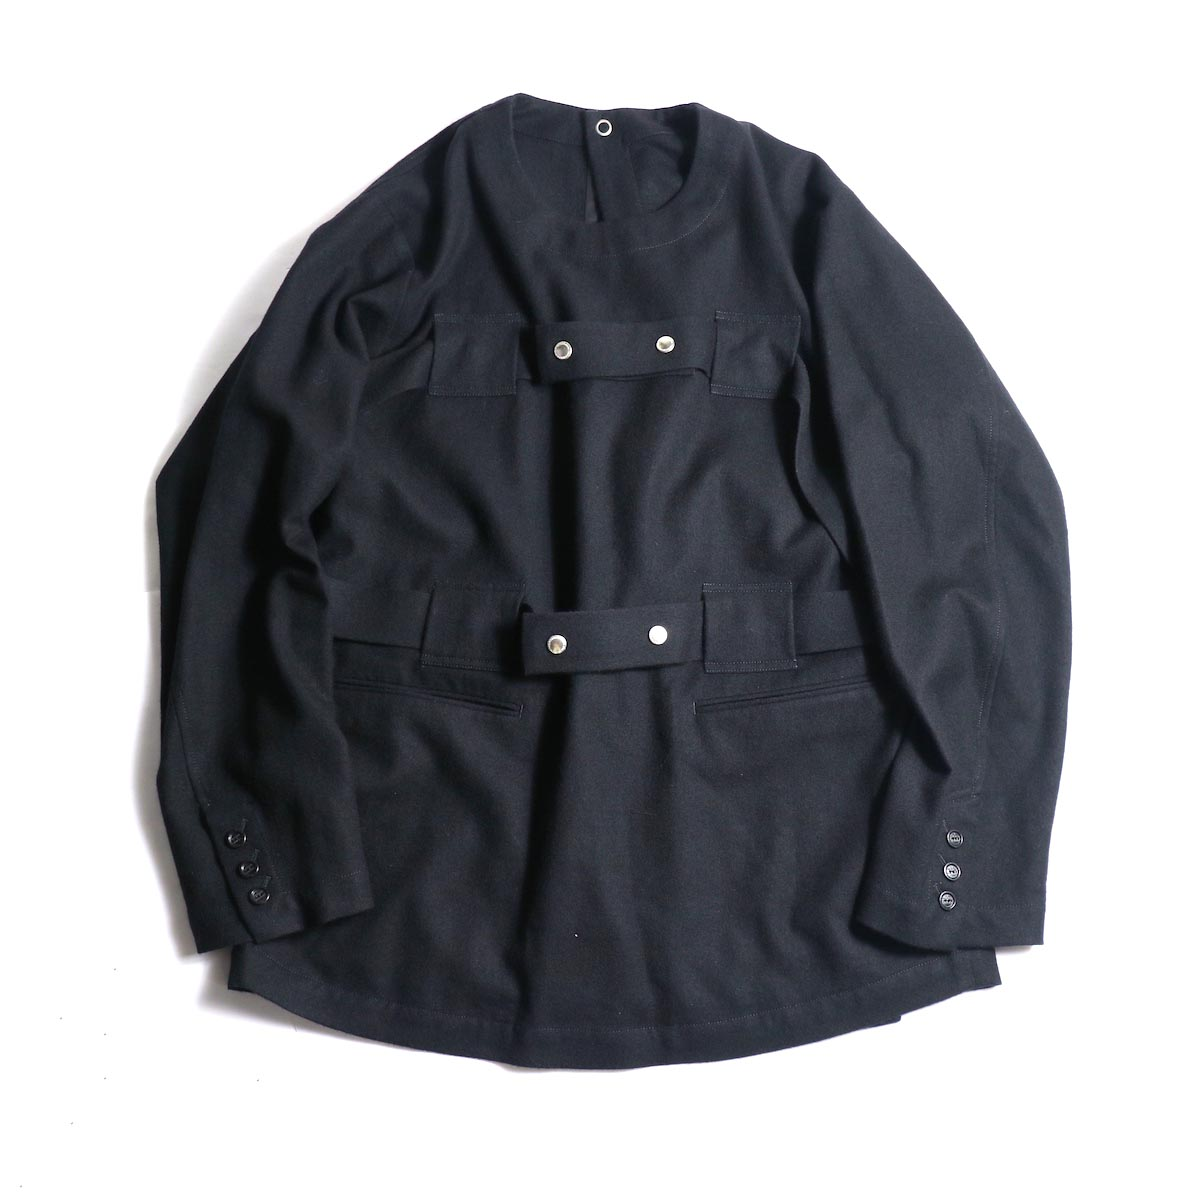 The Soloist / sj.0023b crew neck strapped medical jacket.